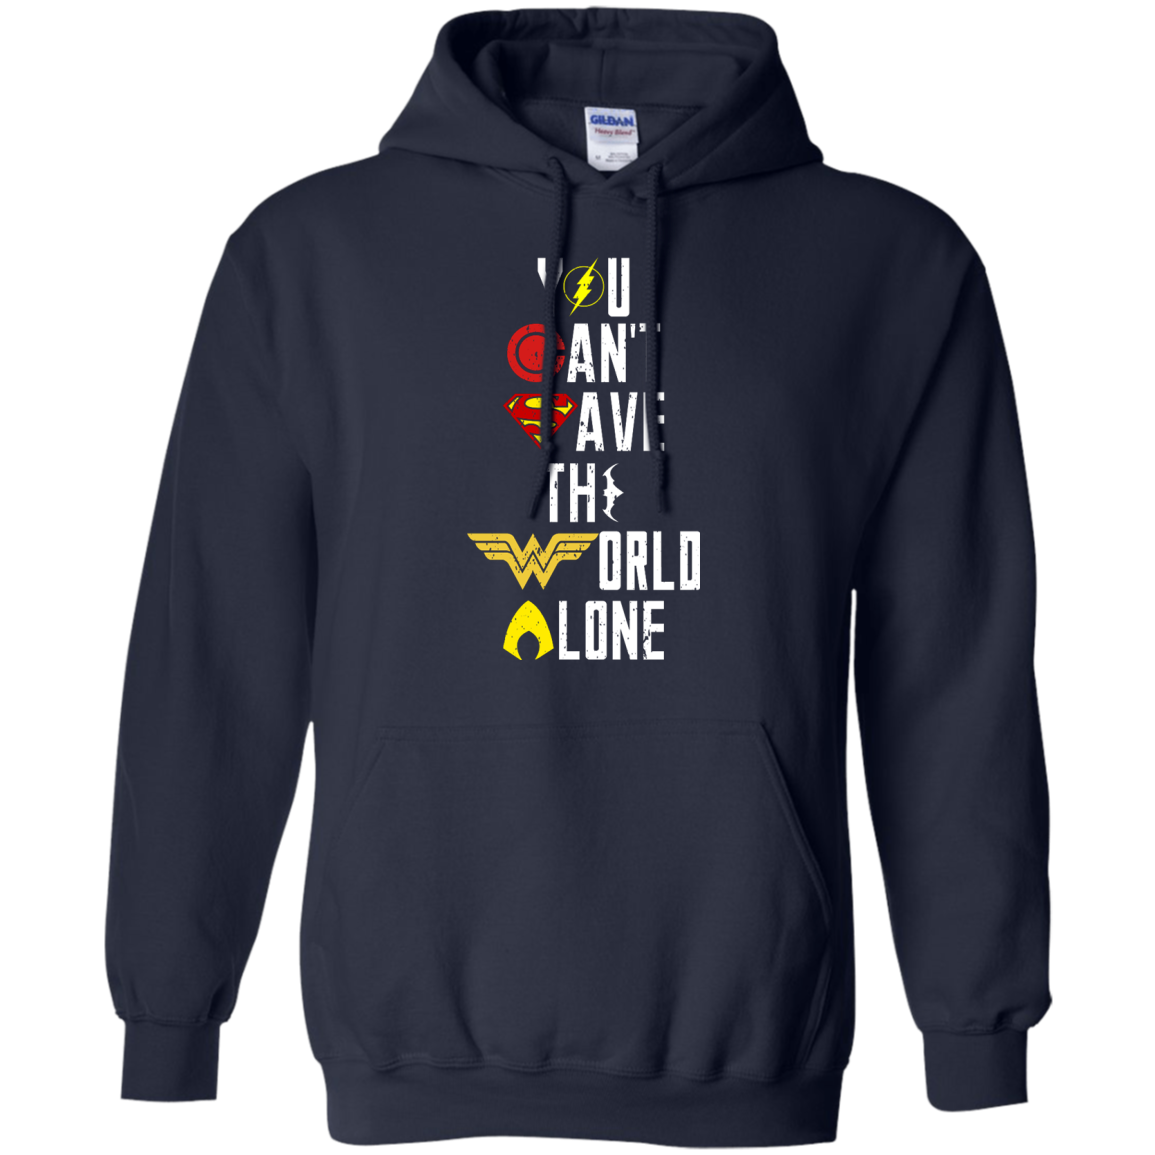 image 27px Justice League: You Can Save The World A Lone T Shirts, Hoodies, Sweaters